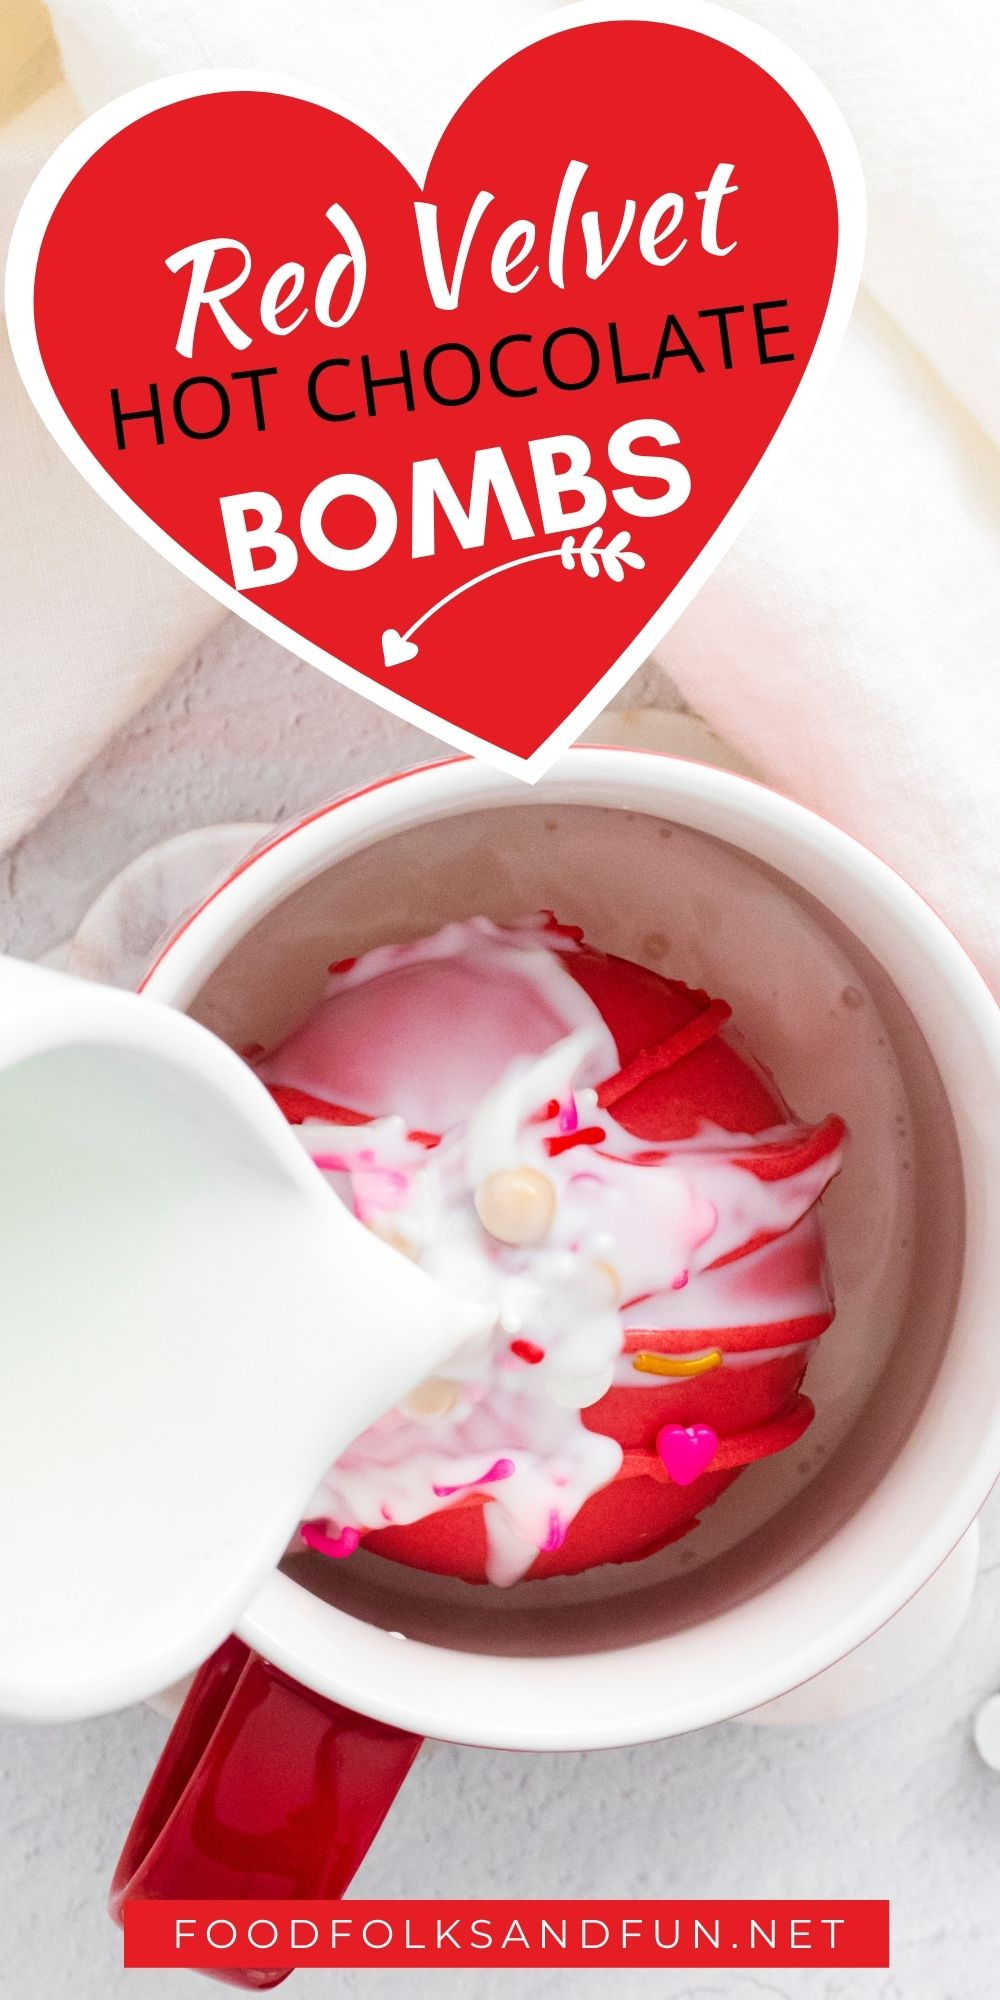 These Red Velvet Hot Chocolate Bombs are white chocolate spheres filled with hot cocoa mix, chocolate shards, and mini marshmallows. Now tell me that doesn't sound delicious! These are perfect for holidays and gifting. via @foodfolksandfun